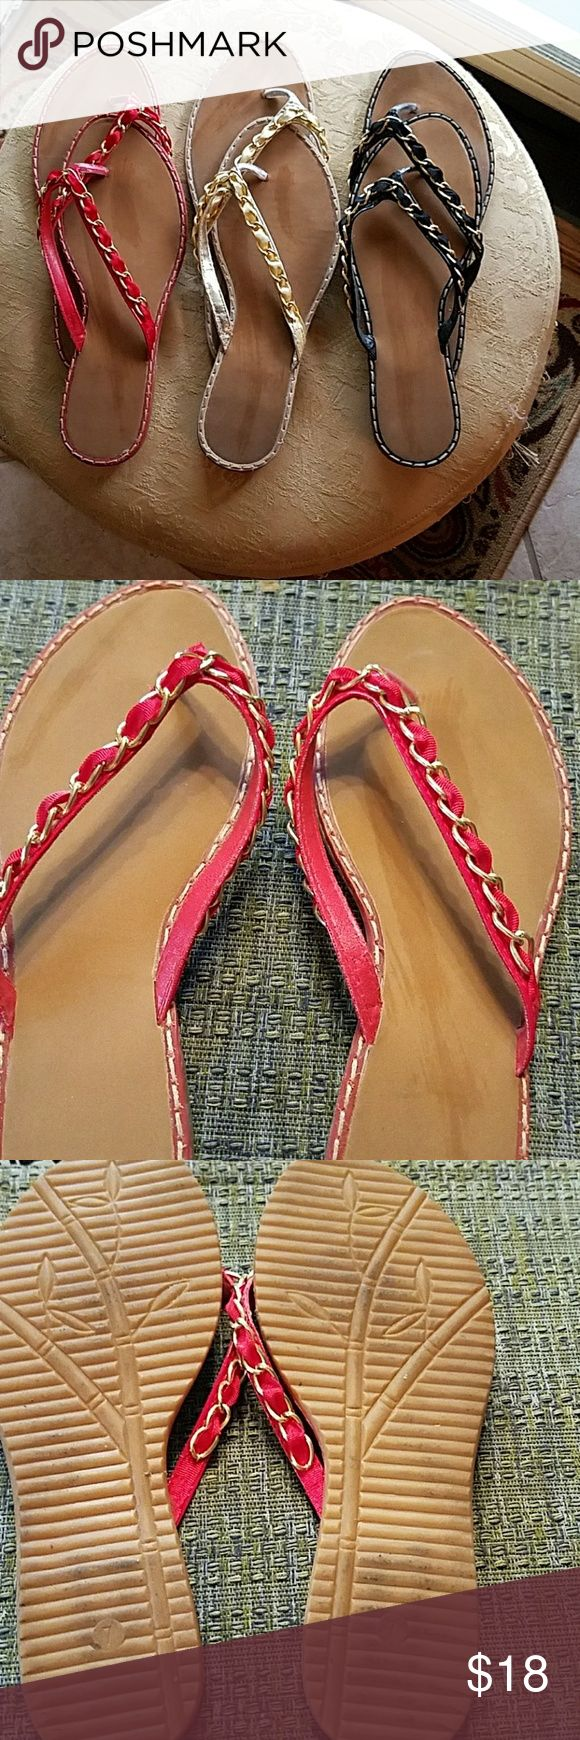 Bundle of 3 Sandals Great colors and slenderizing on your foot! Red, Gold, Black ribbons run through a gold chain on each. Super cute! Shoes Sandals